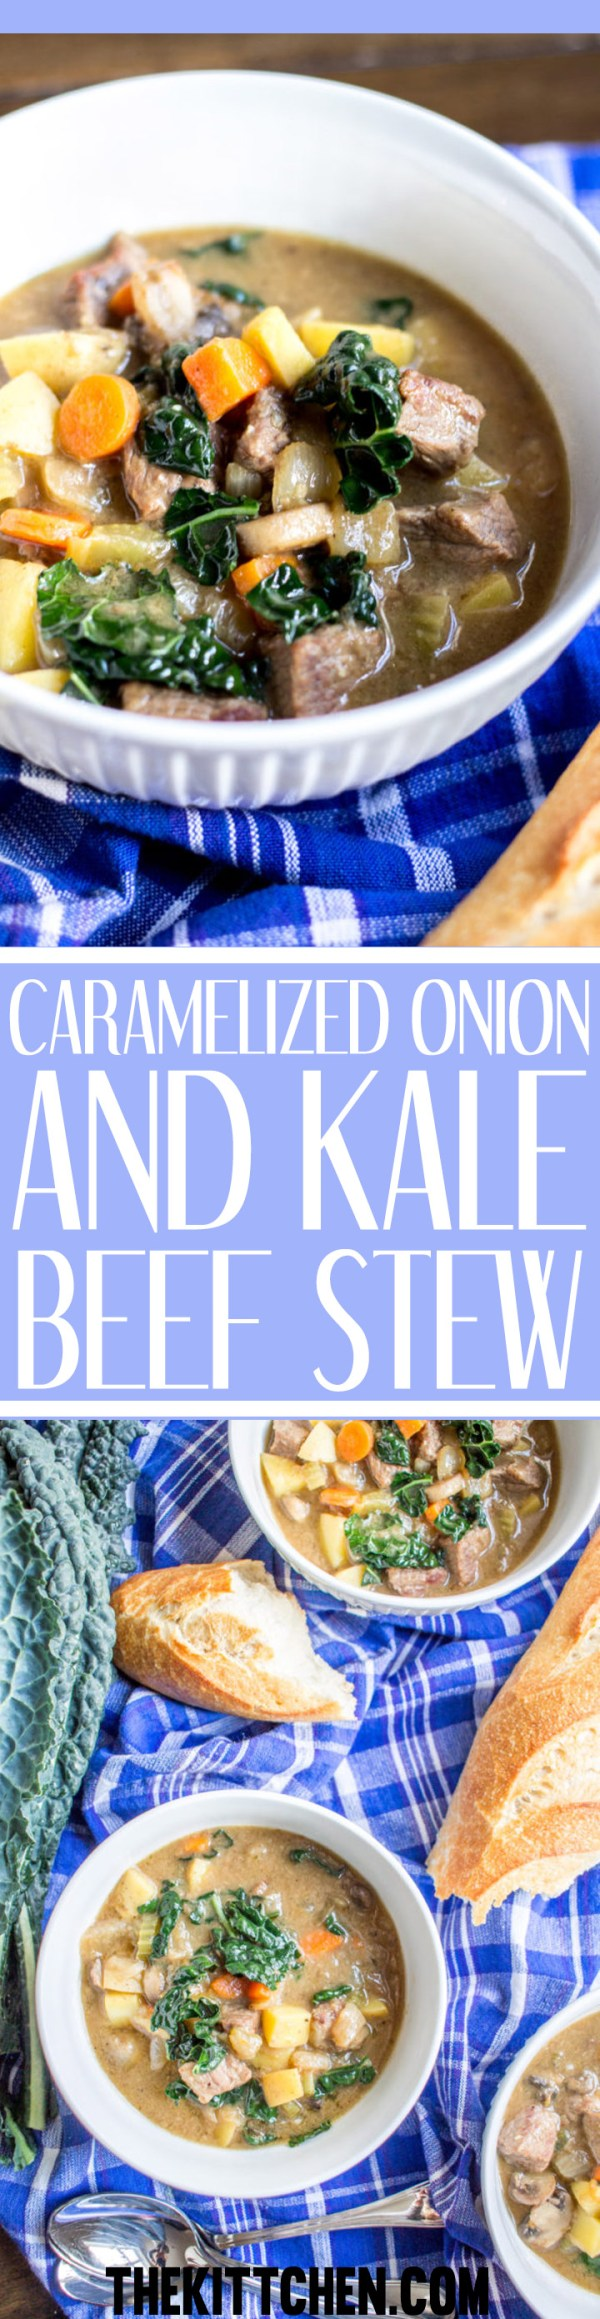 Caramelized Onion and Kale Beef Stew - Your family will love this delicious from scratch recipe!